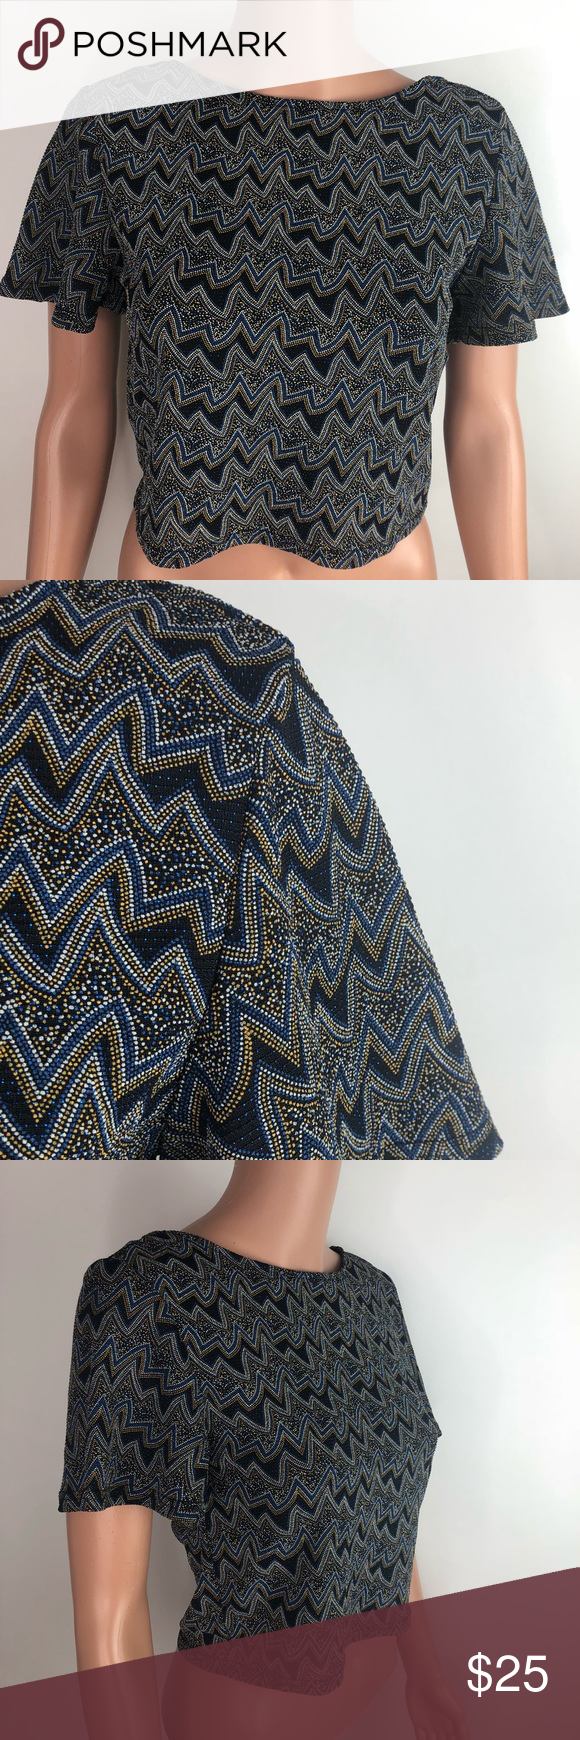 de1d16a29d1a86 NWT Zara Beaded Patterned Knot Tie Croptop NWT Zara Beaded Patterned Knot  Tie Croptop New with